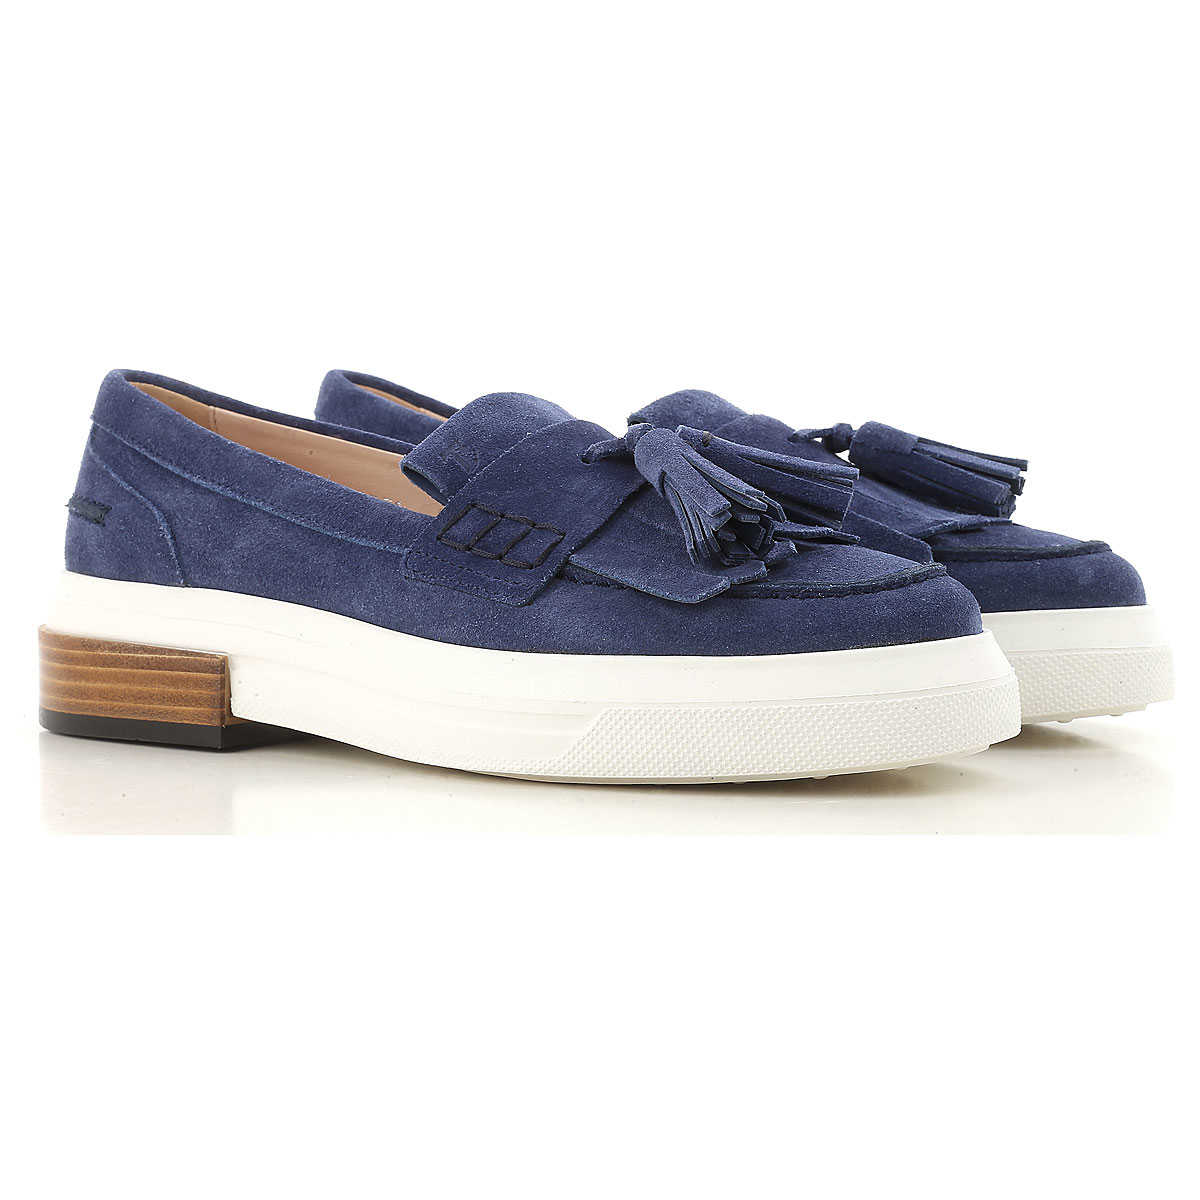 Tods Loafers for Women On Sale Cobalt SE - GOOFASH